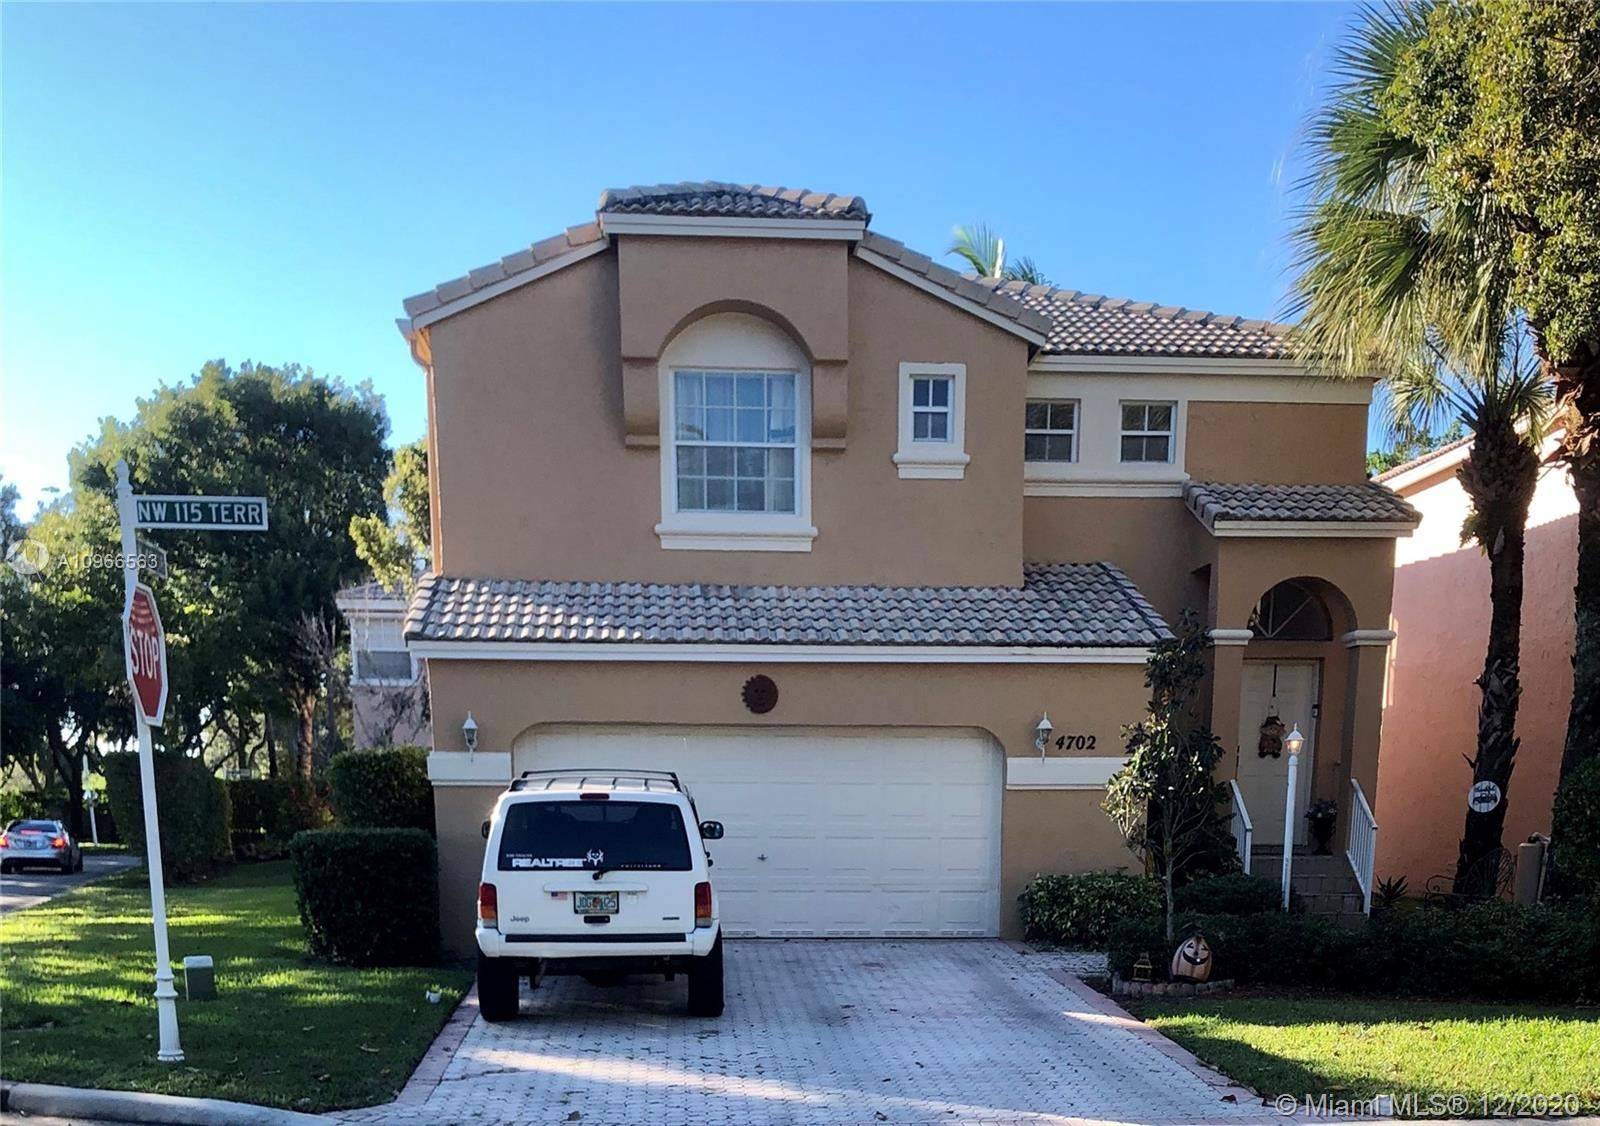 4702 NW 115th Ter, Coral Springs, FL 33076 - #: A10966563